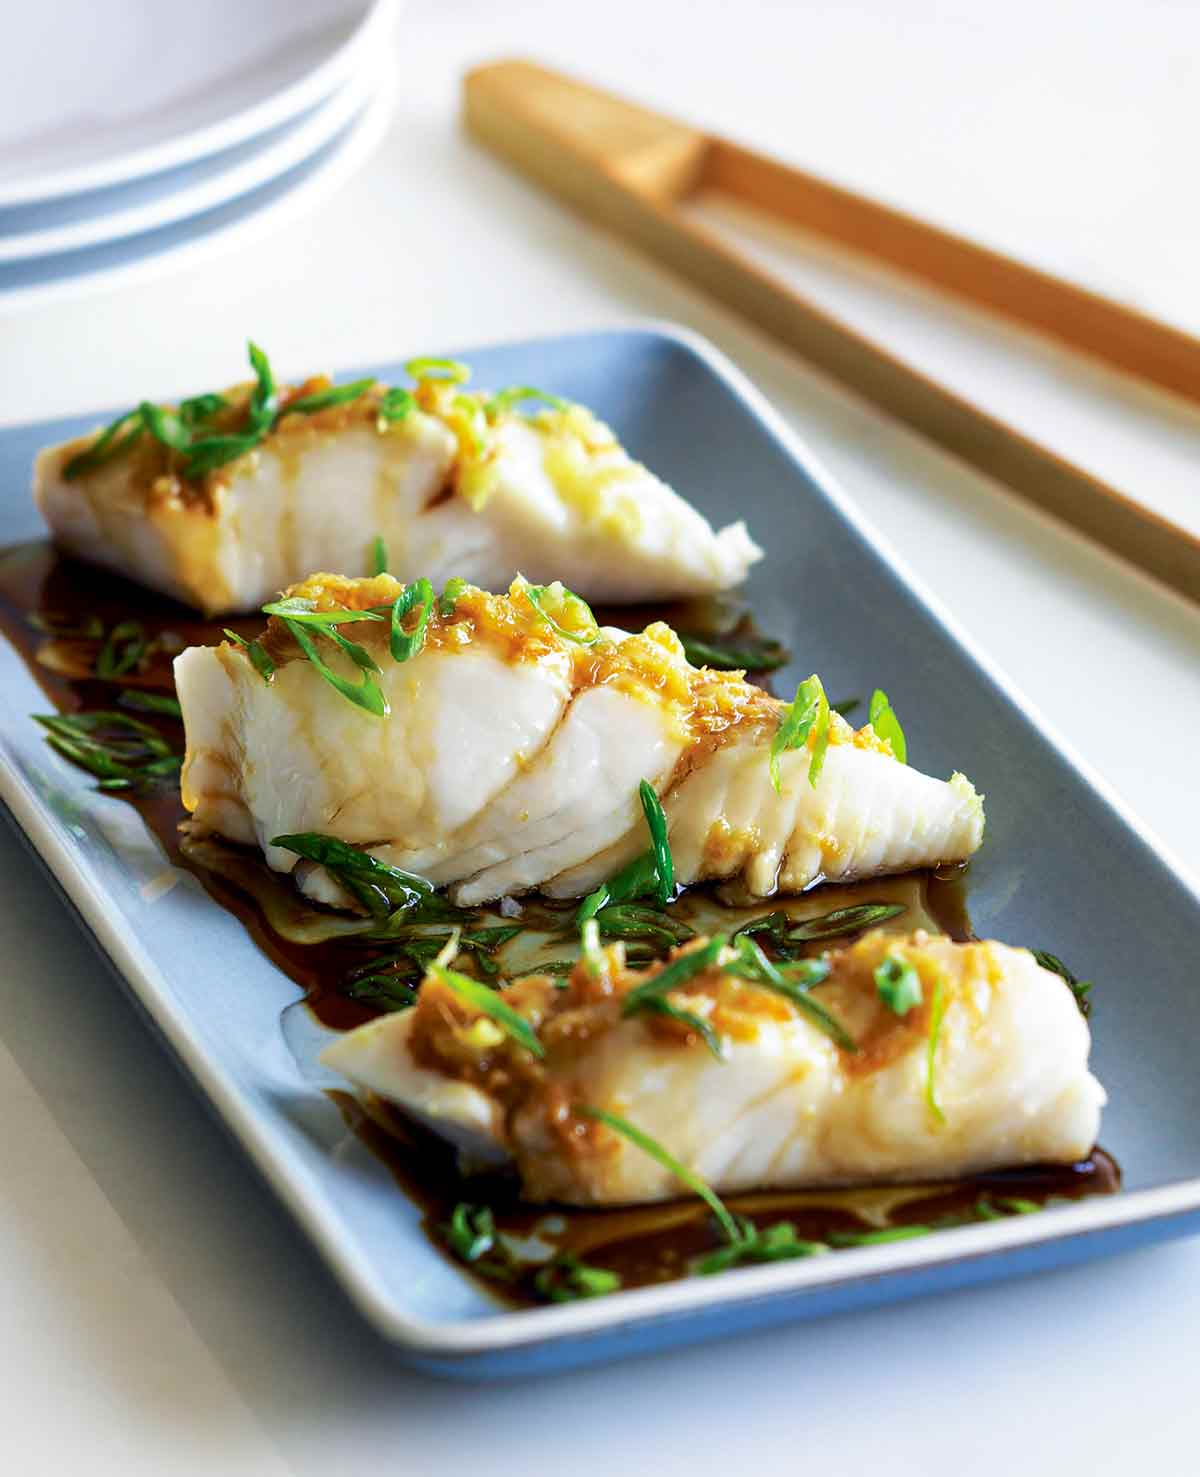 Three pieces of steamed halibut with ginger and scallions on a blue rectangular plate with chopsticks on the side.